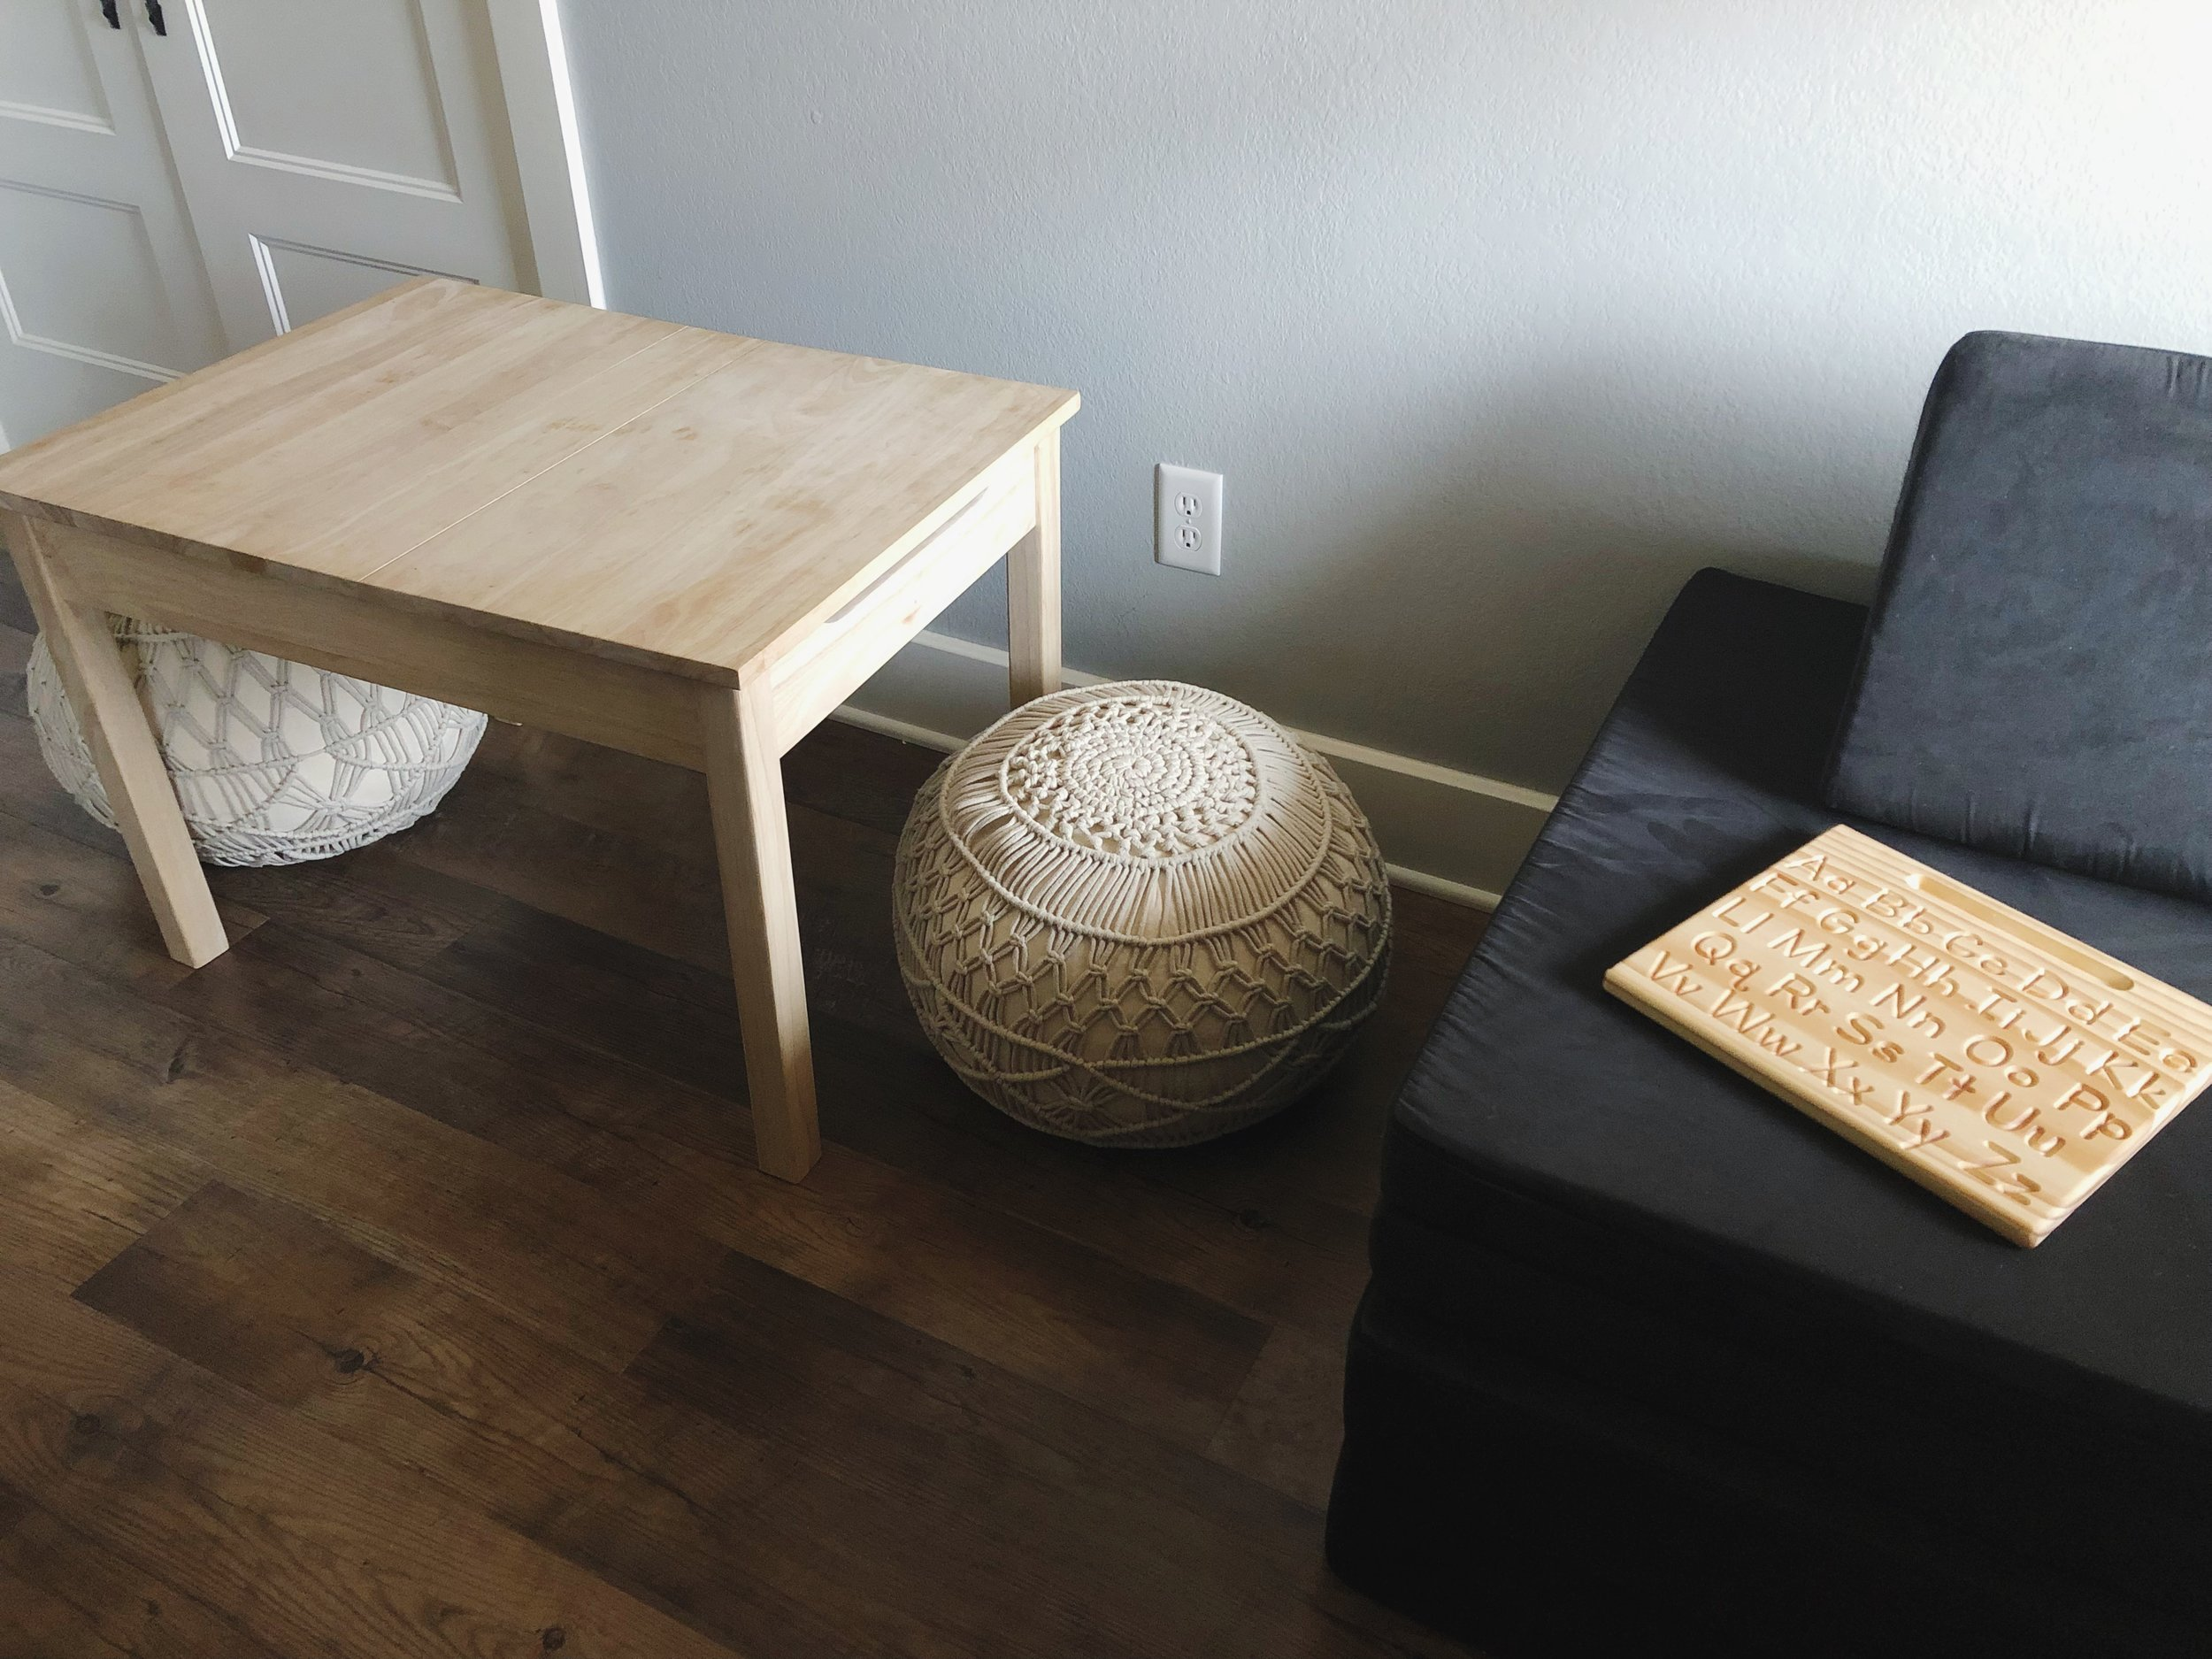 unfinished-table-pouf-ottoman.JPG